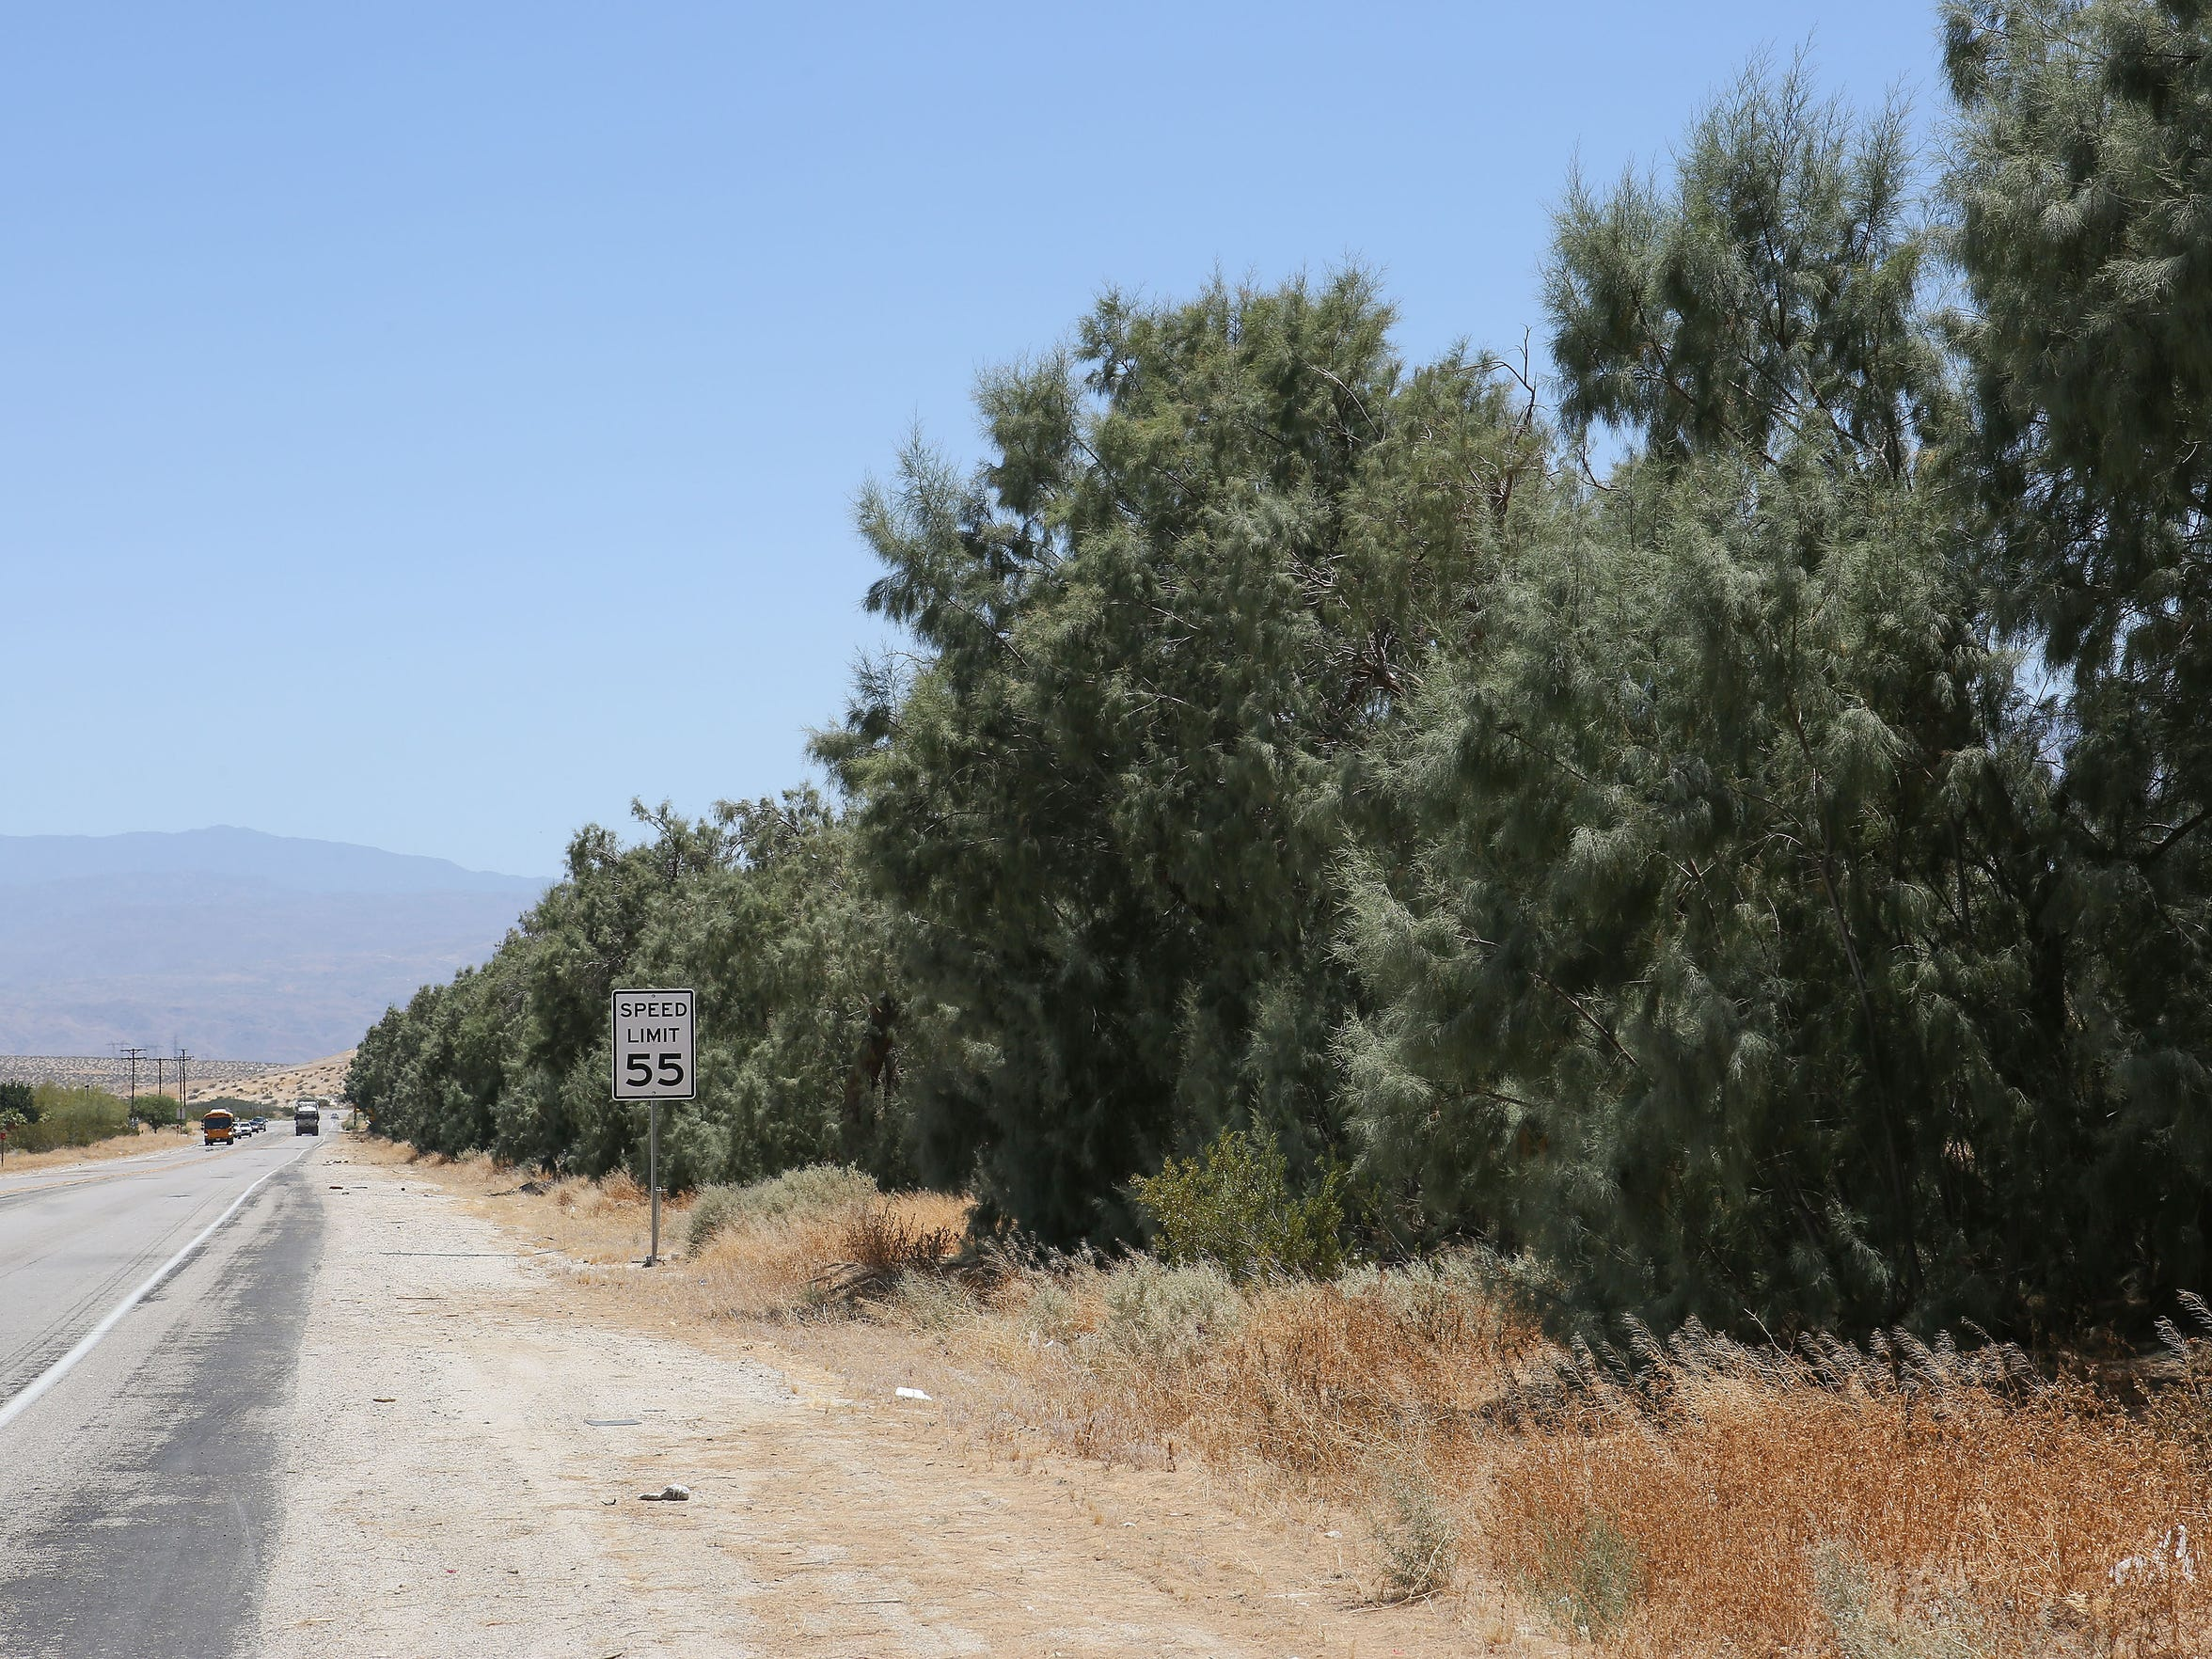 A row of tamarisk trees line a street in Desert Hot